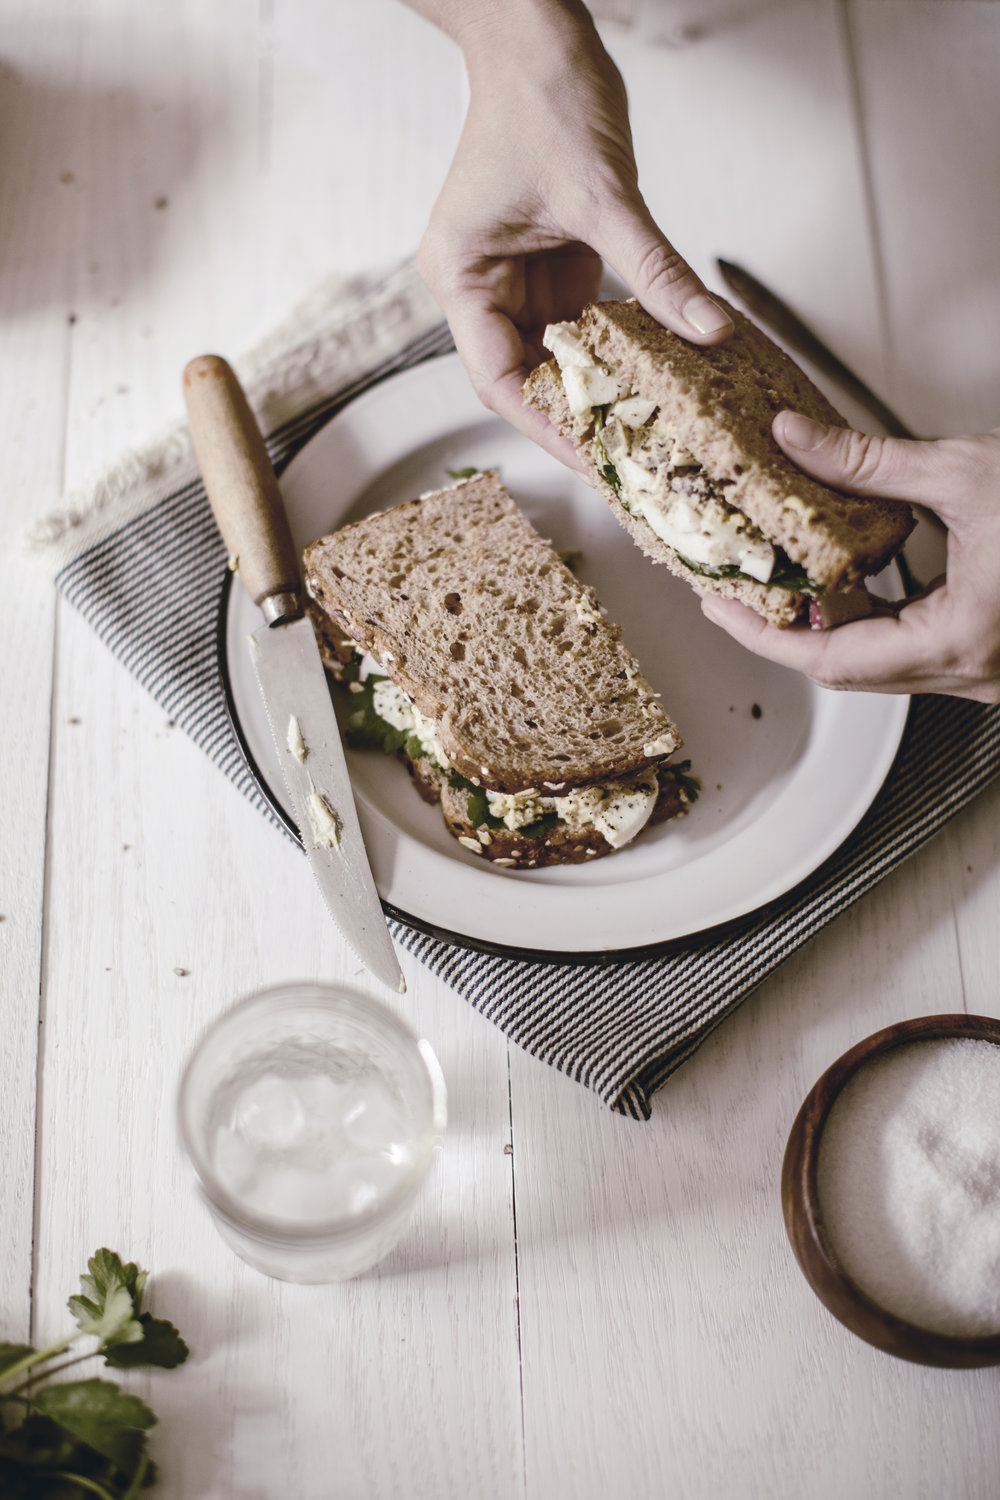 picnic sandwiches / egg salad sandwich on wheat / railroad stripe tea towel / heirloomed